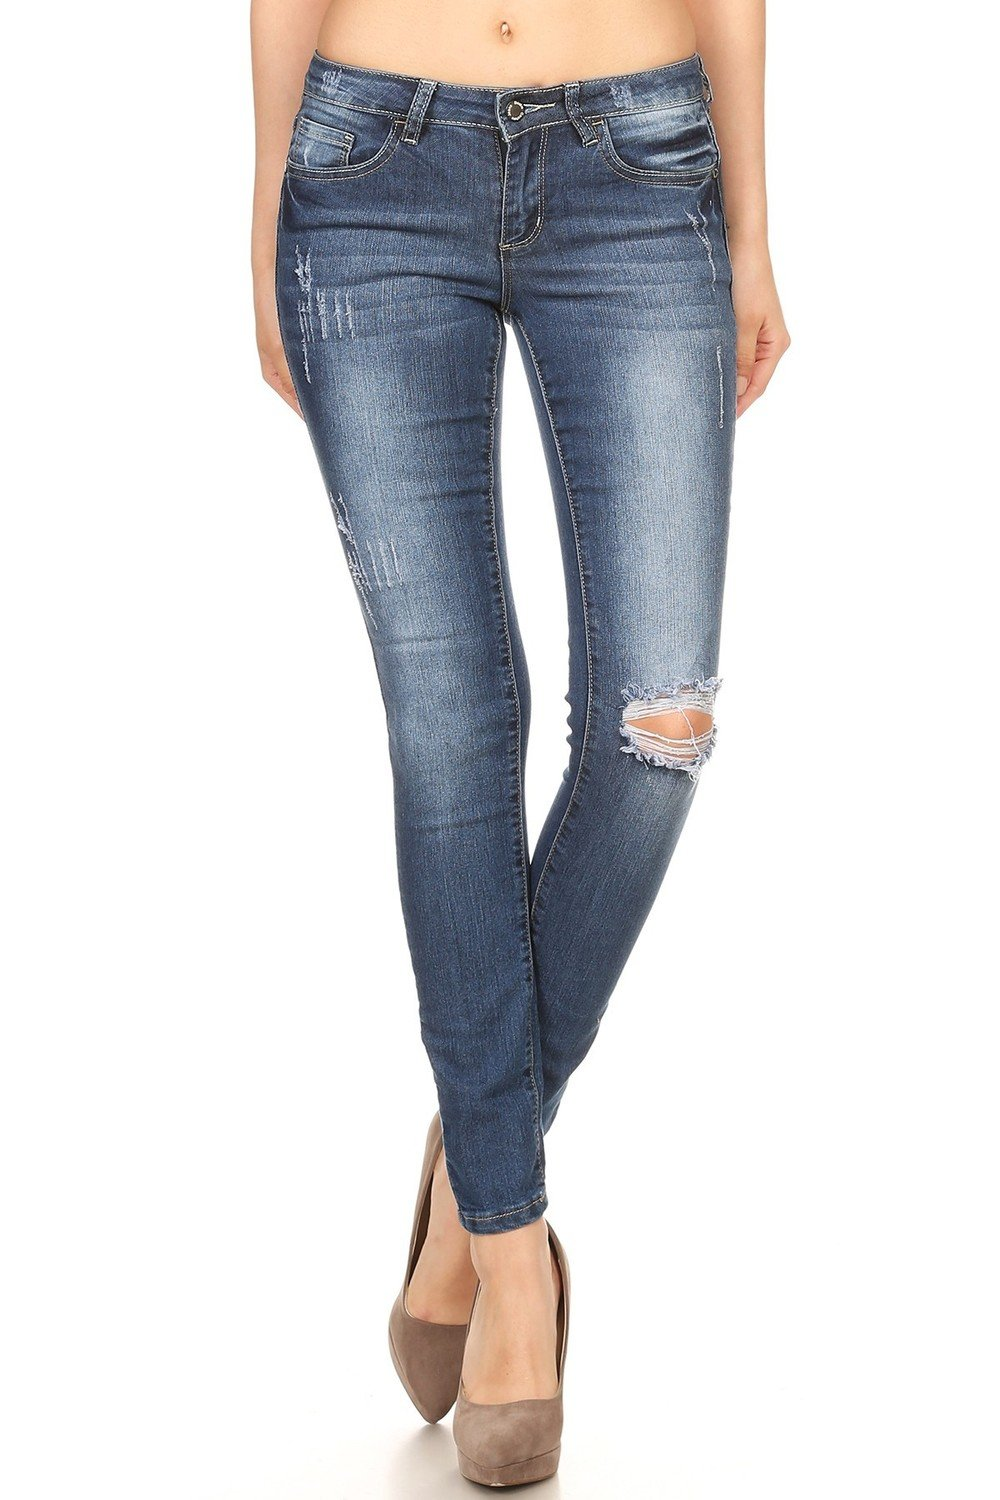 Denim Couture Destroyed Knee Jean